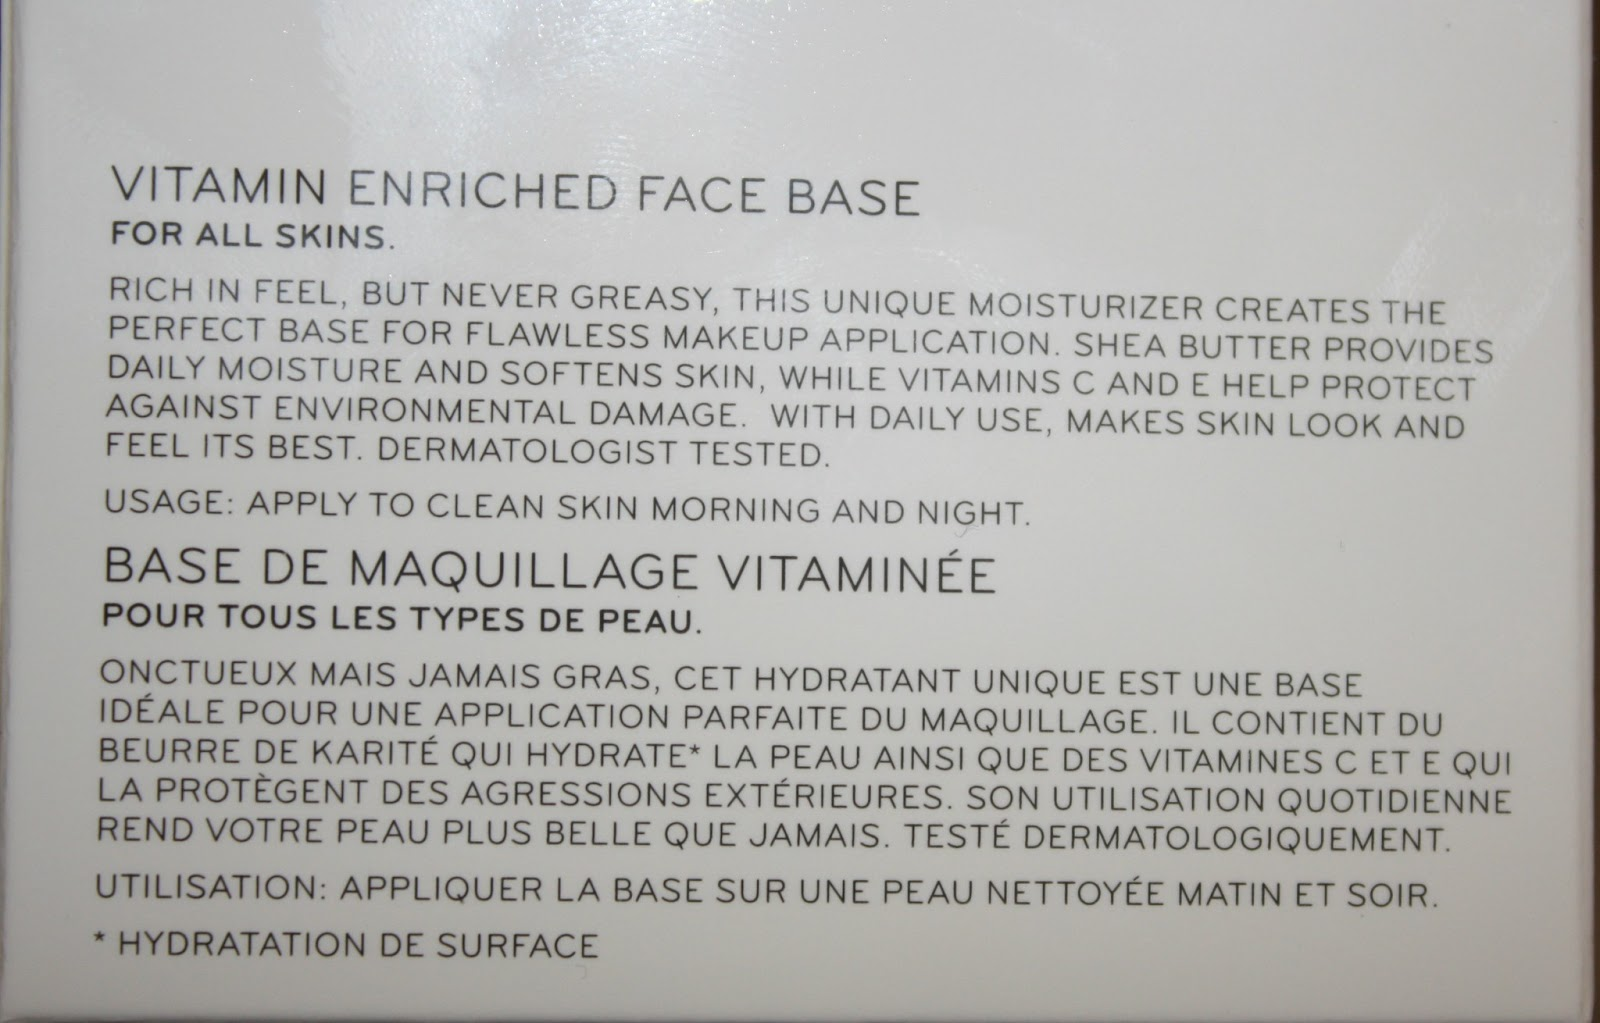 Vitamin Enriched Face Base by Bobbi Brown Cosmetics #13